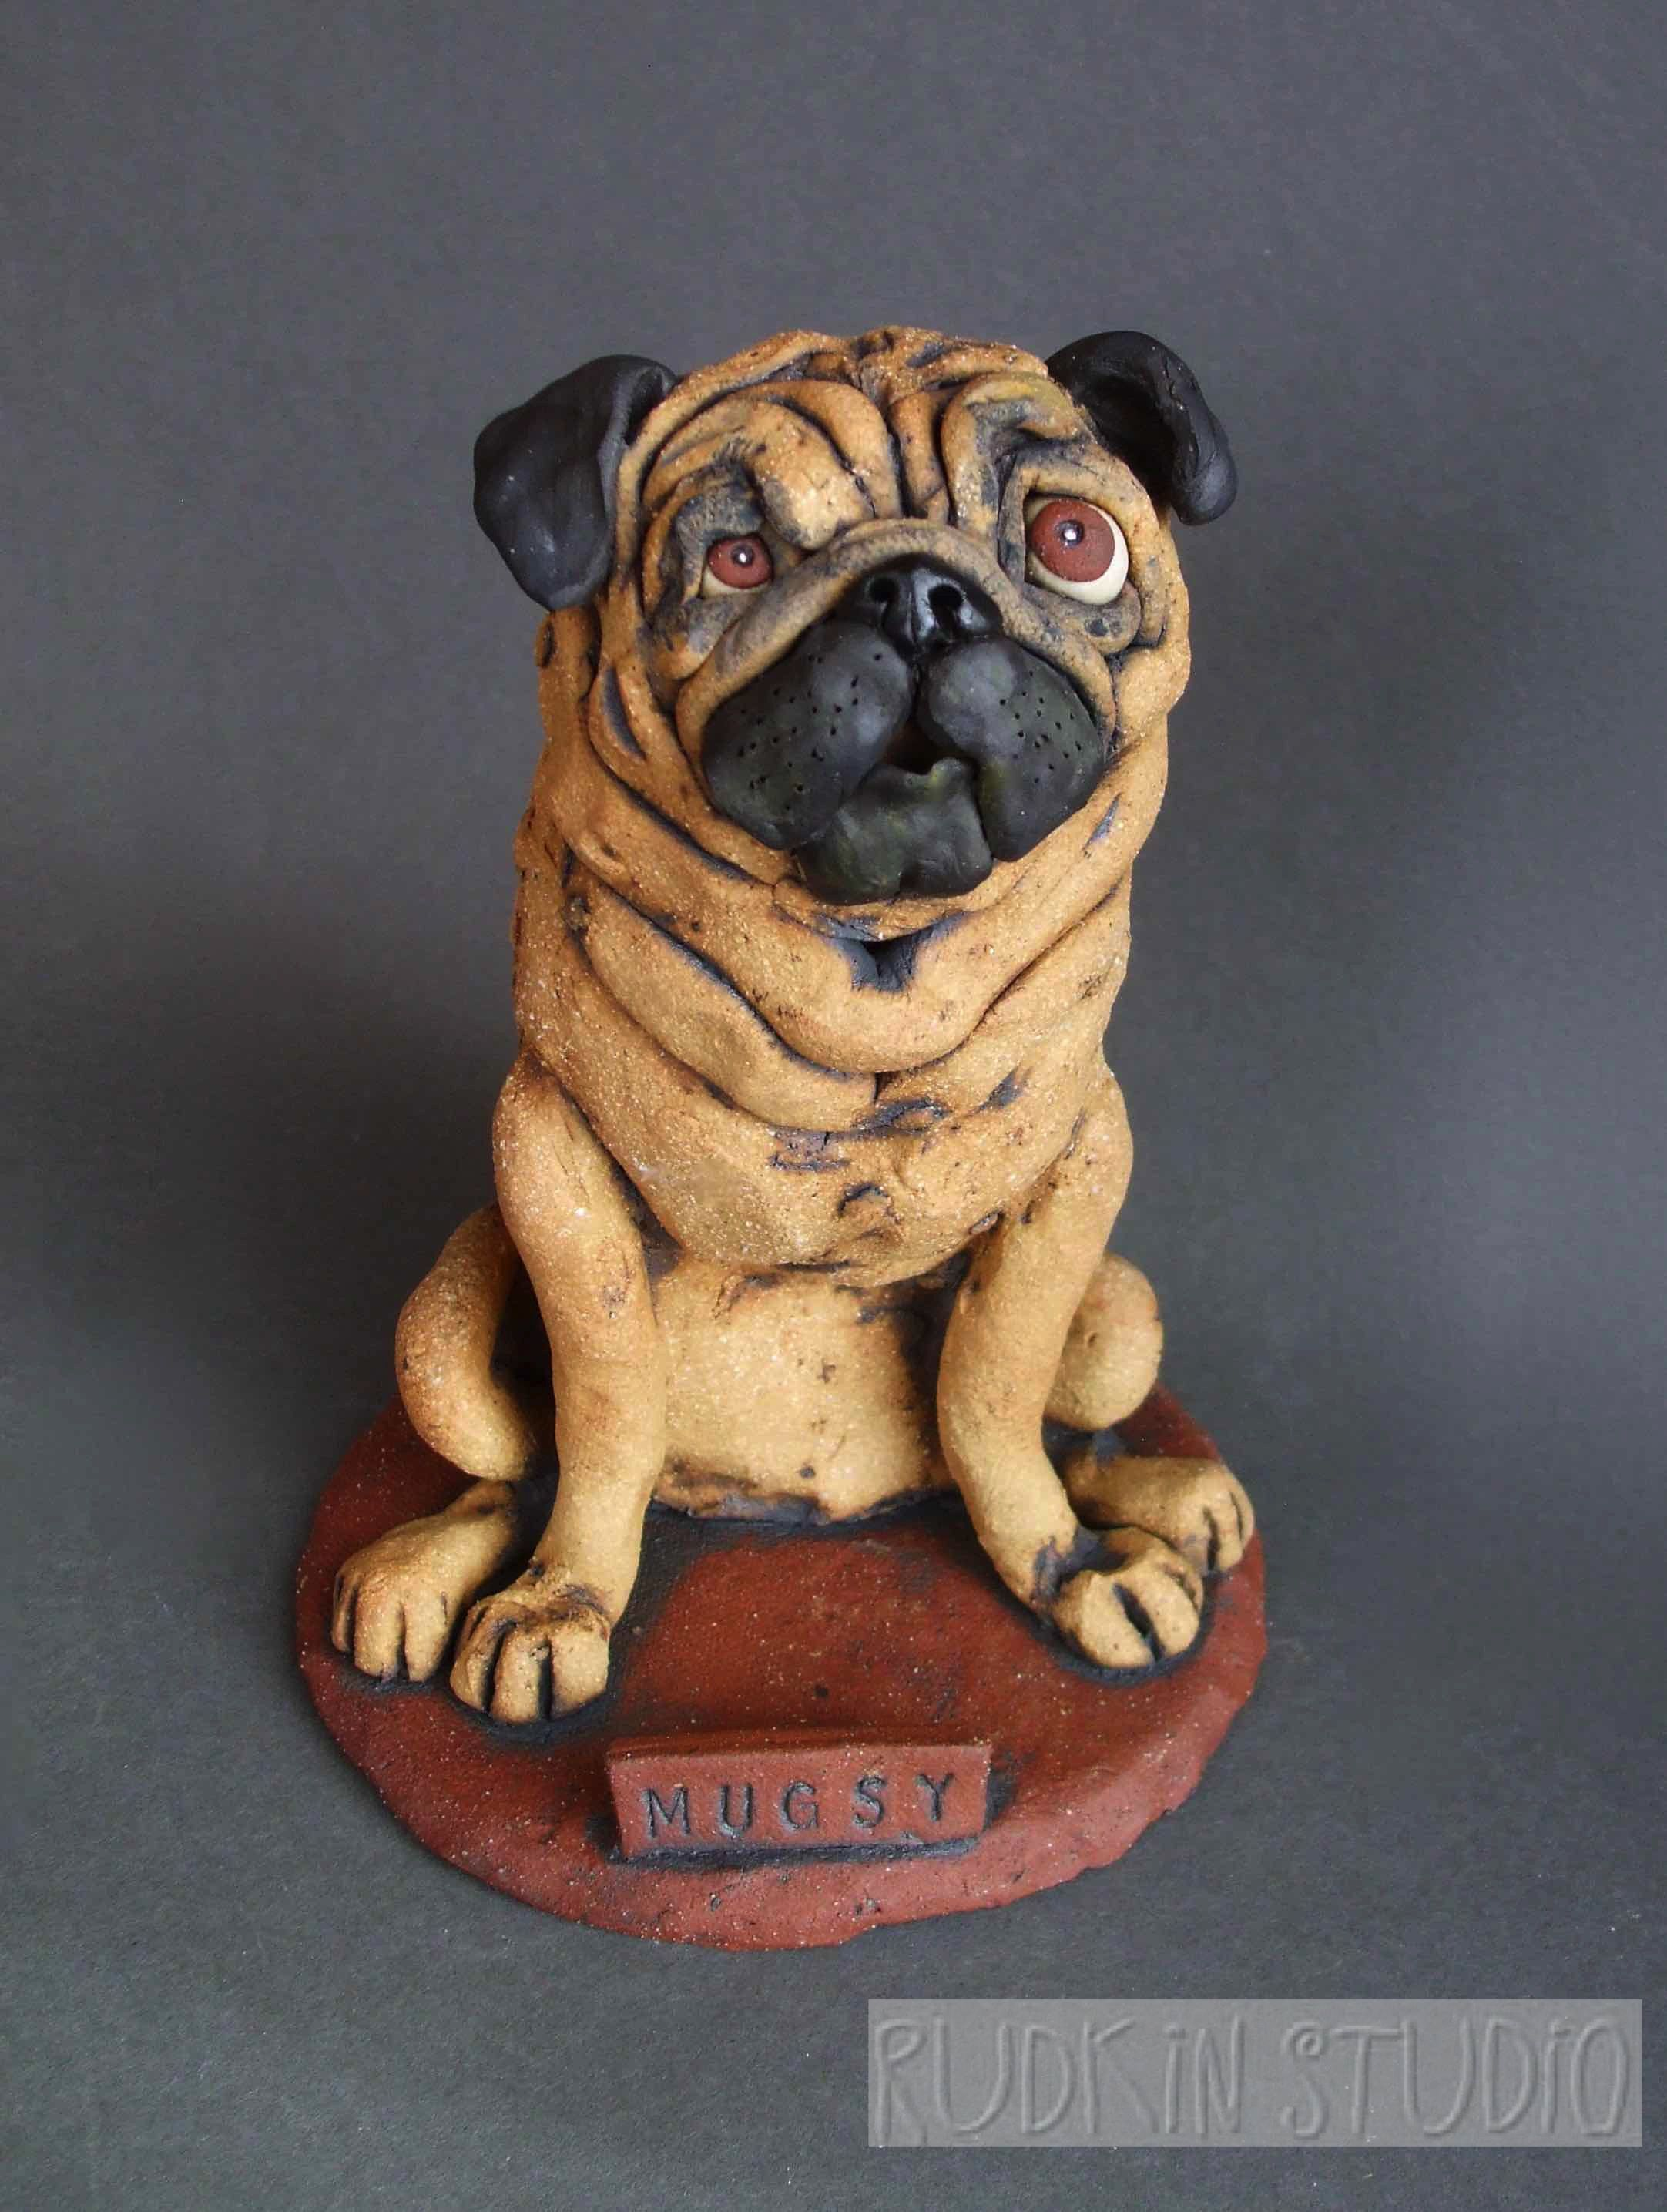 The Sweet Pug Dog In This Custom Sculpture Is Unique In Having One